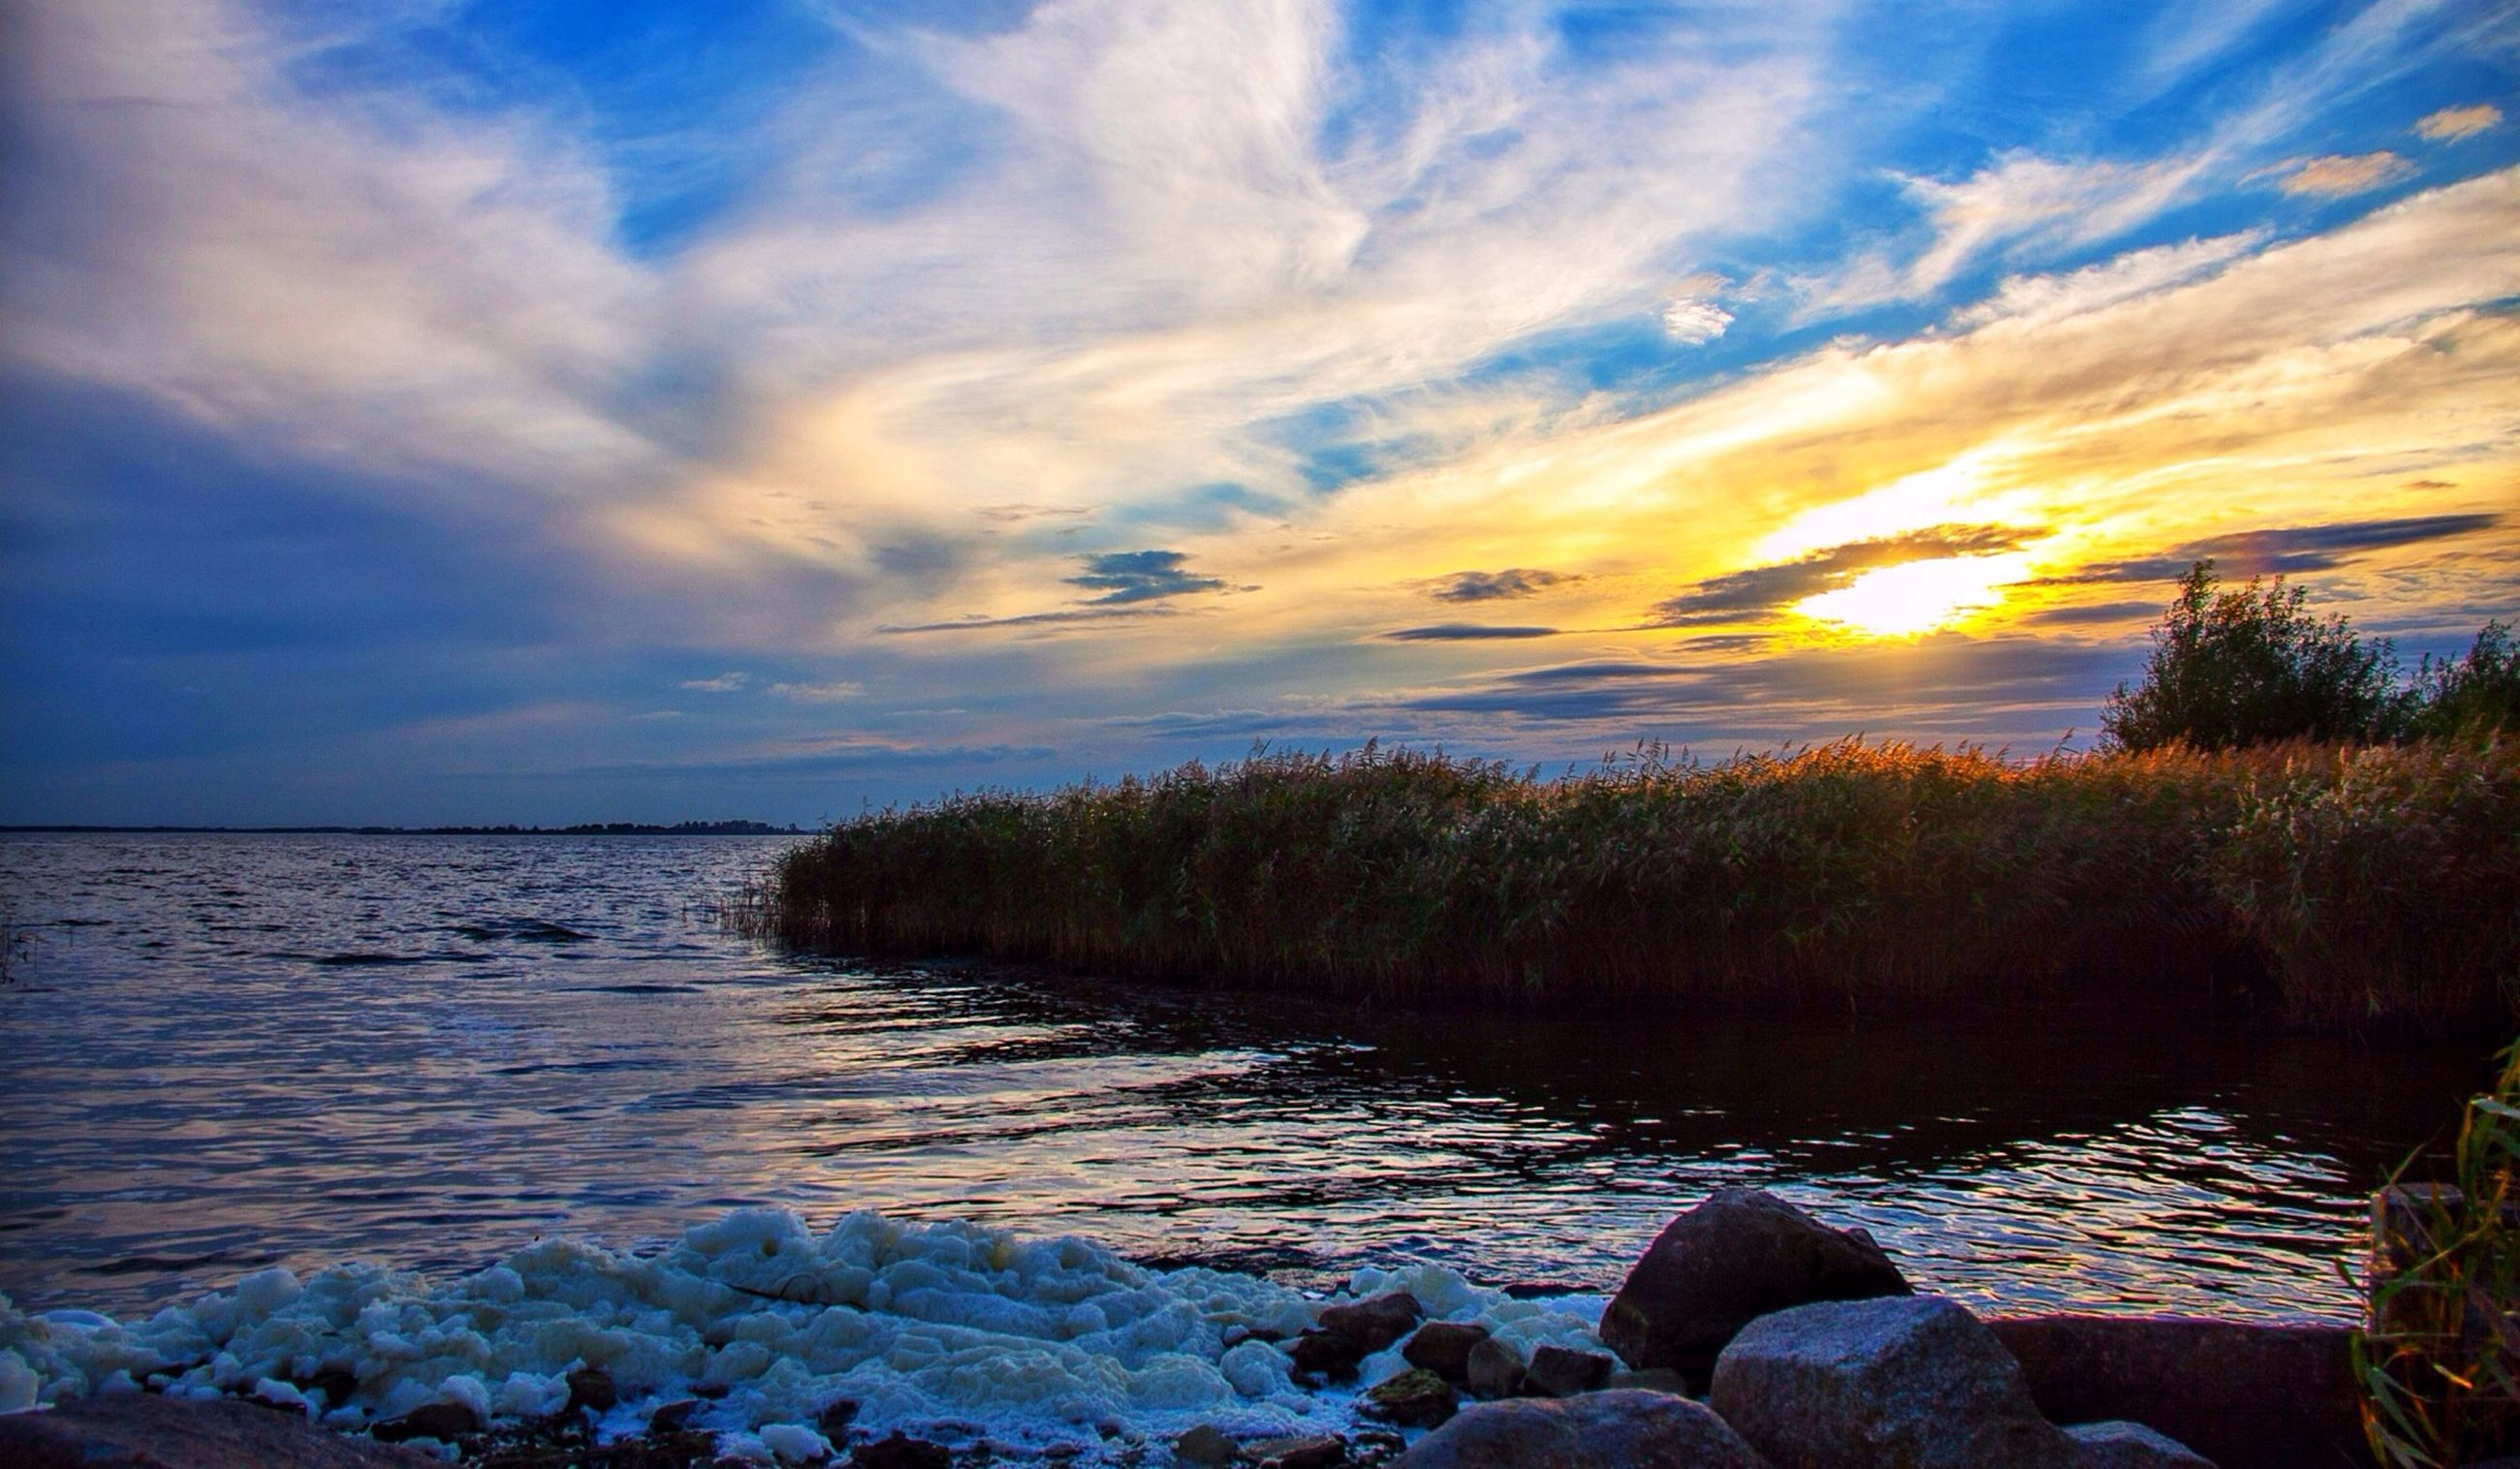 water, scenics, tranquil scene, sky, beauty in nature, tranquility, sunset, nature, cloud - sky, rock - object, sea, idyllic, reflection, cloud, lake, non-urban scene, outdoors, remote, horizon over water, non urban scene